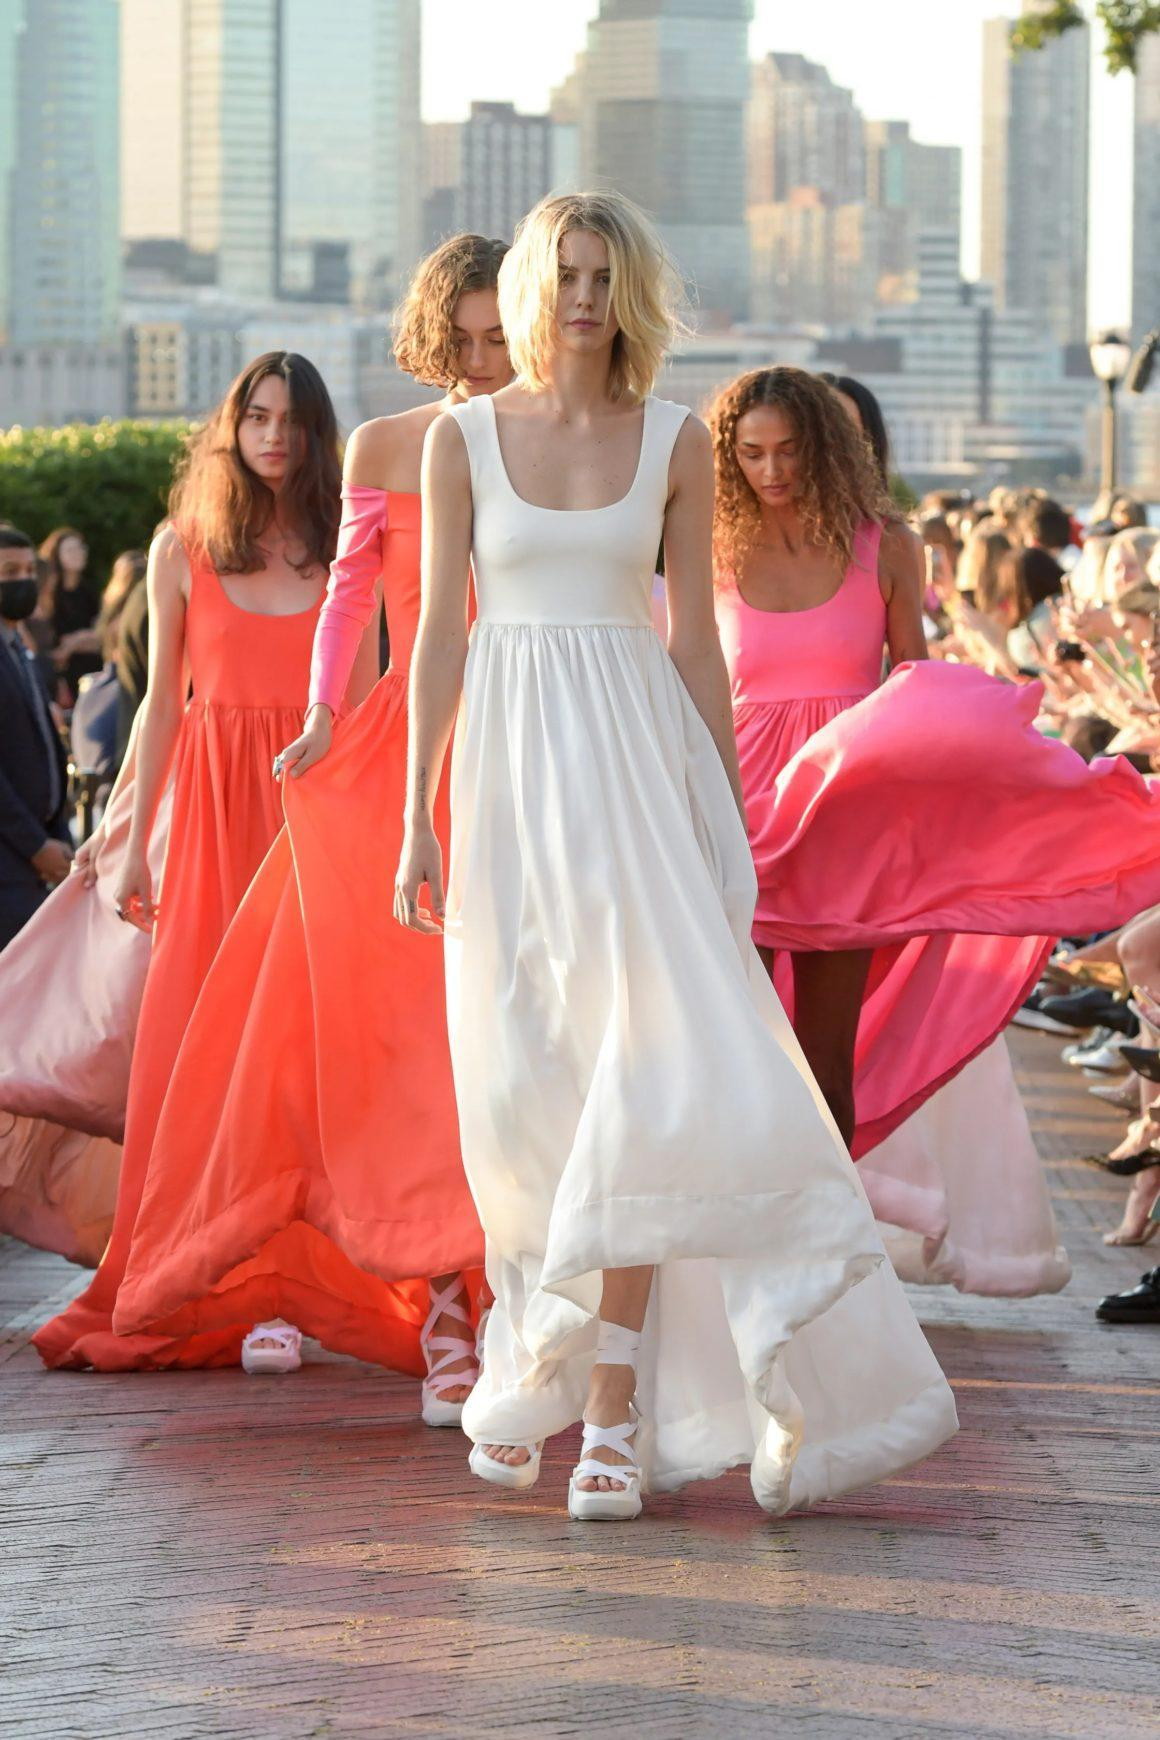 Cynthia Rowley Brings Flowy Silhouettes and Fresh Colors to Spring 2022 Runway Show at Wagner Park With a Captivating View of Statue of Liberty